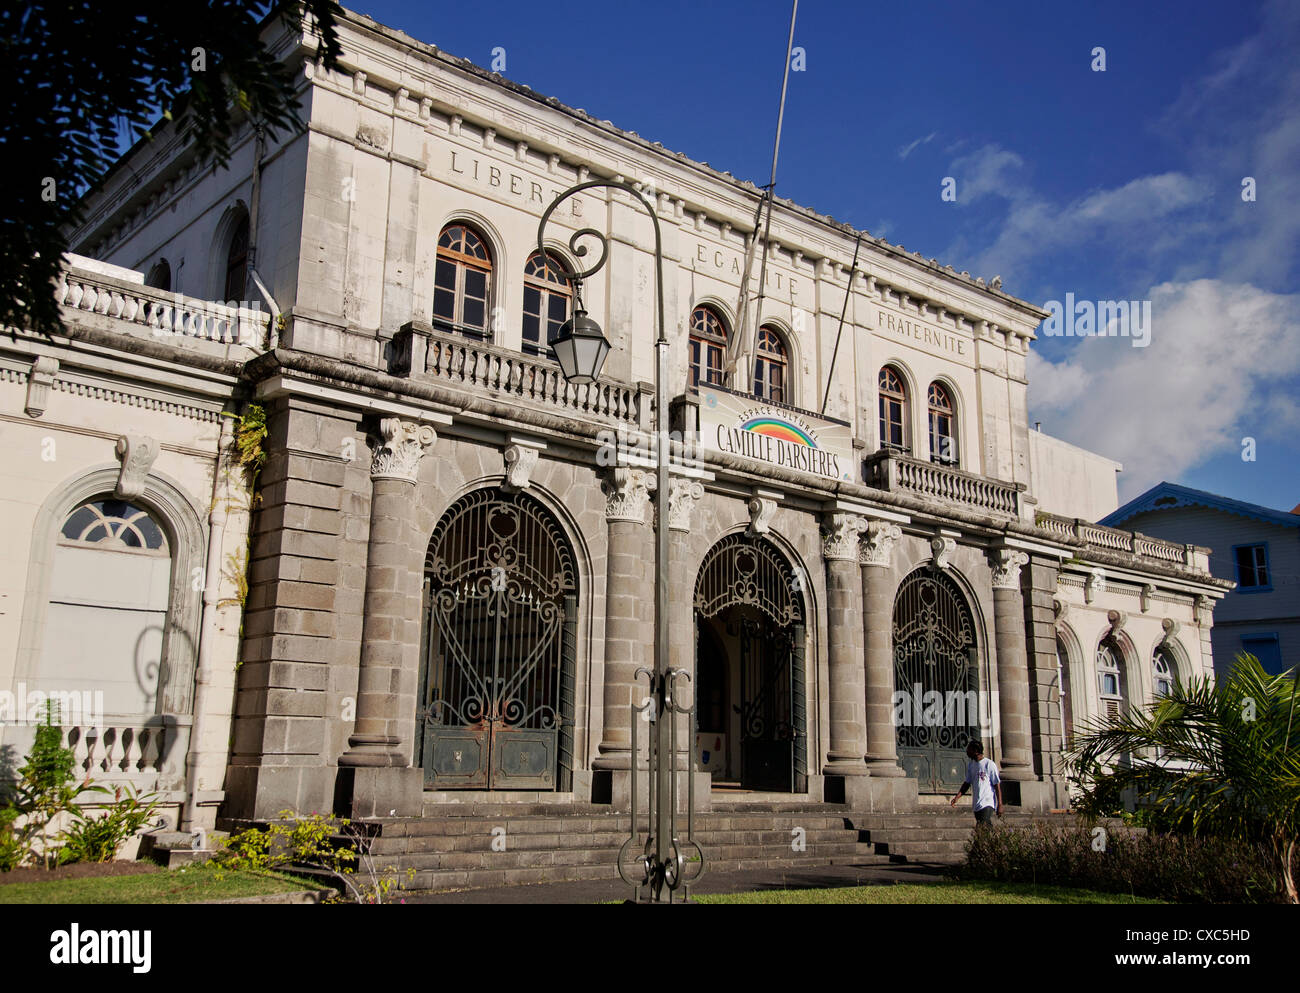 Former Courthouse building, Fort-de-France, Martinique, Lesser Antilles, West Indies, Caribbean, Central America - Stock Image